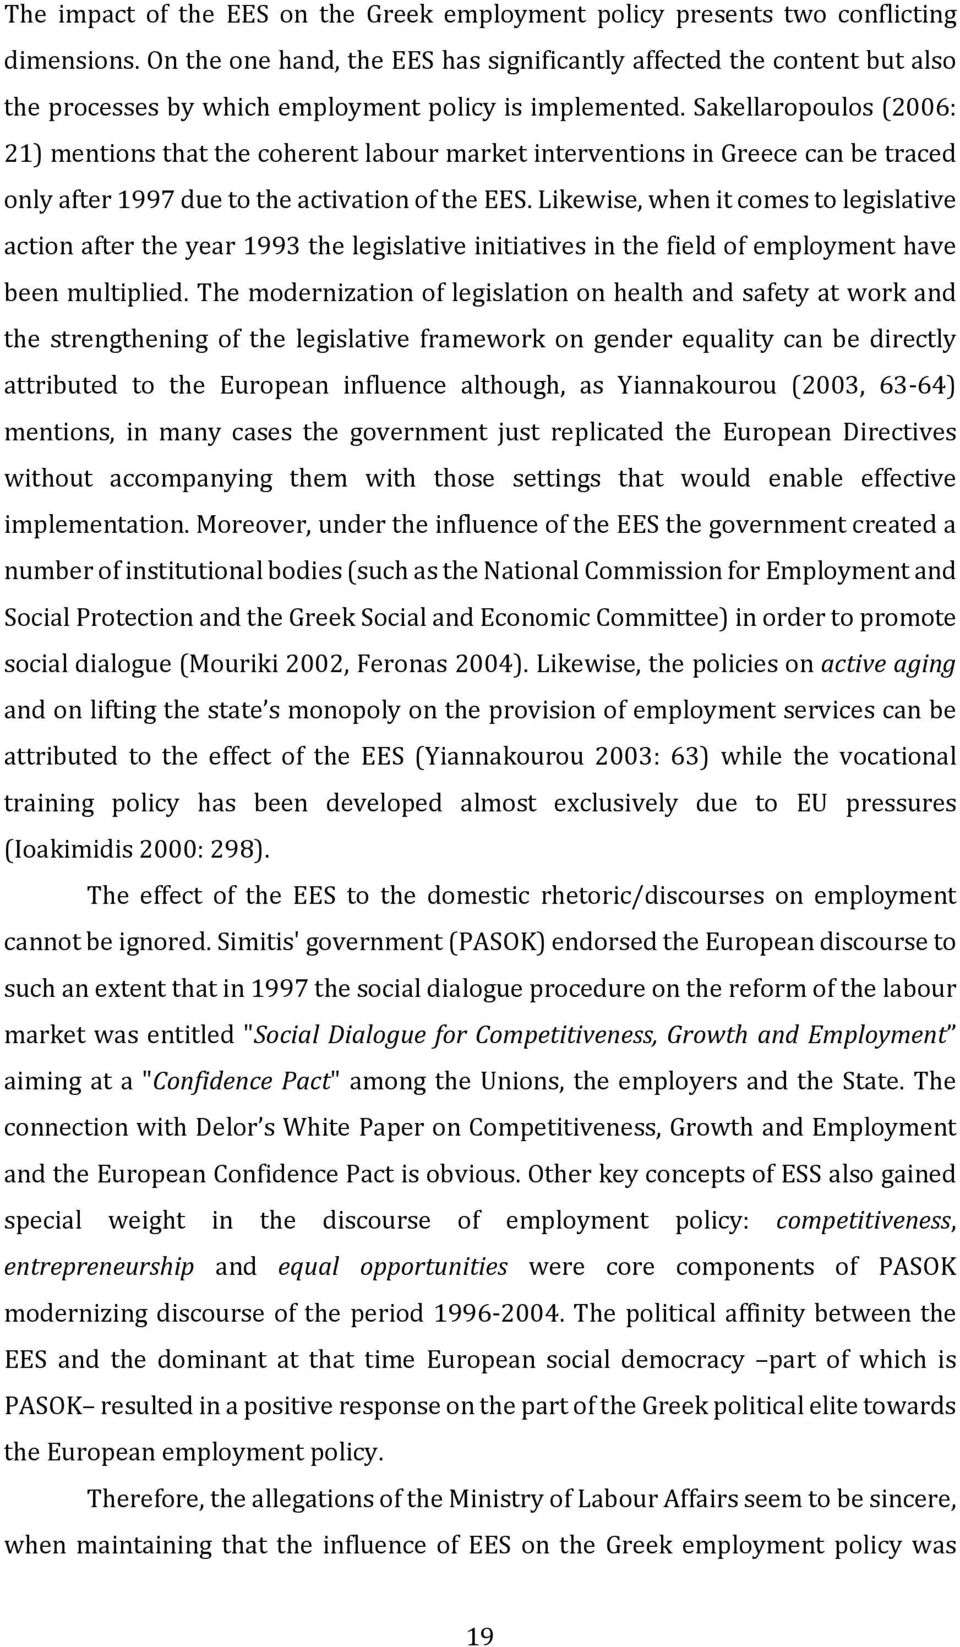 Sakellaropoulos (2006: 21) mentions that the coherent labour market interventions in Greece can be traced only after 1997 due to the activation of the EES.